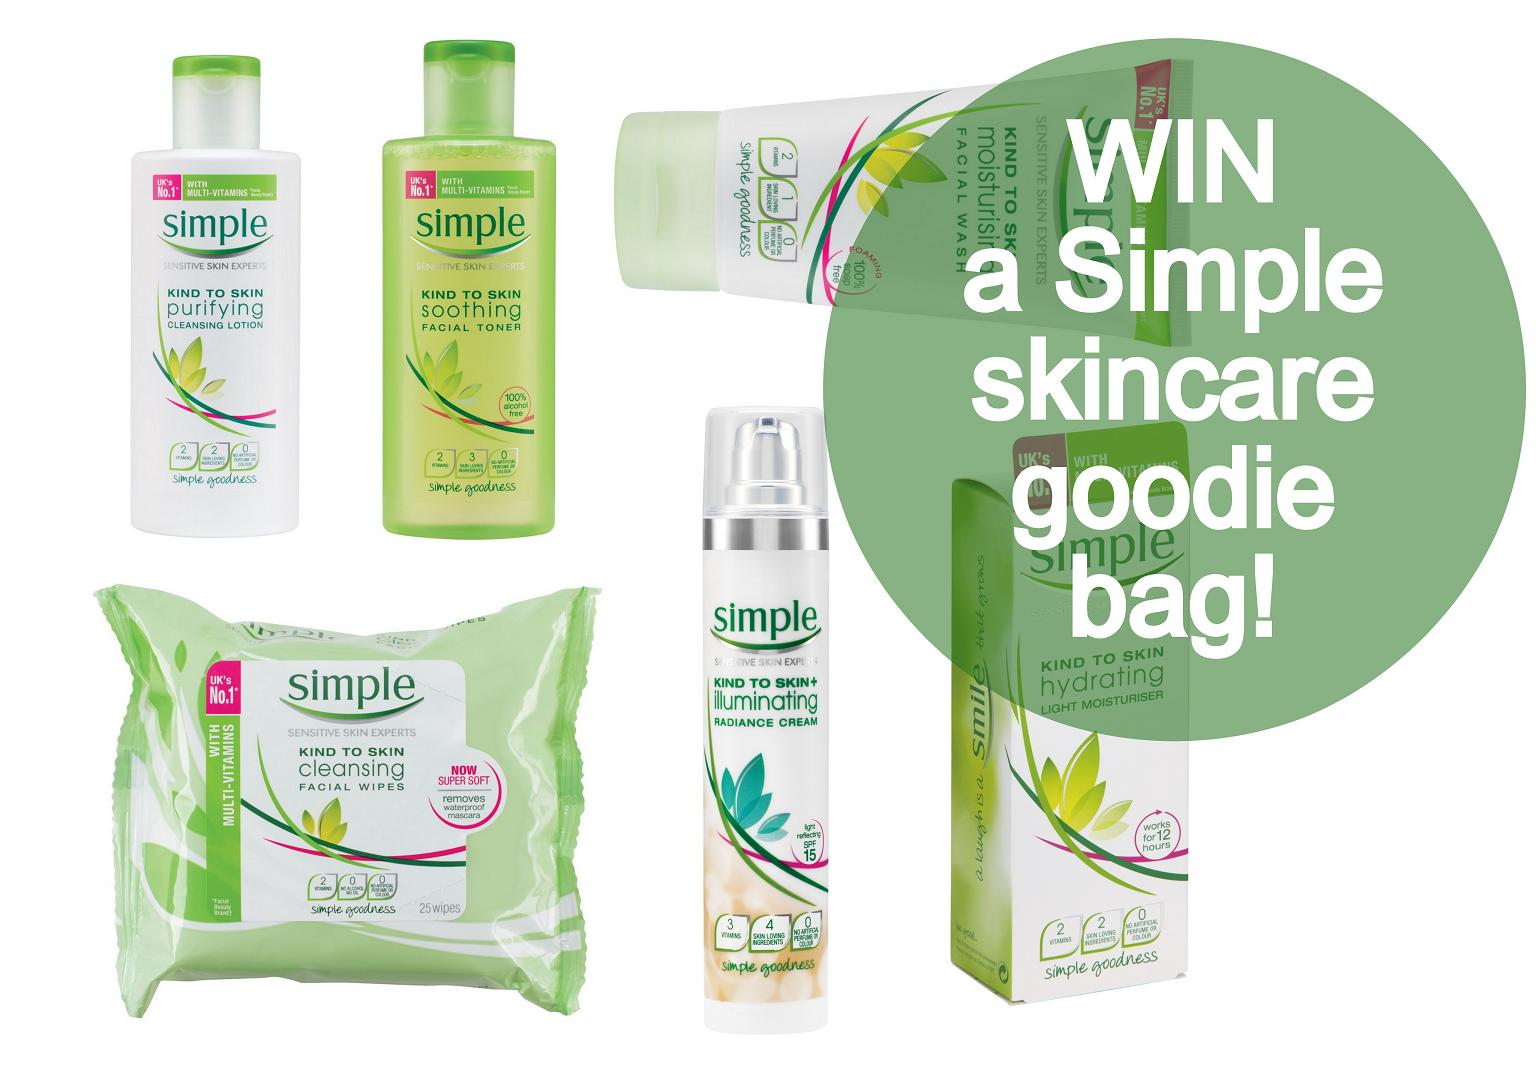 Simple Skincare Kind to City Skin giveaway